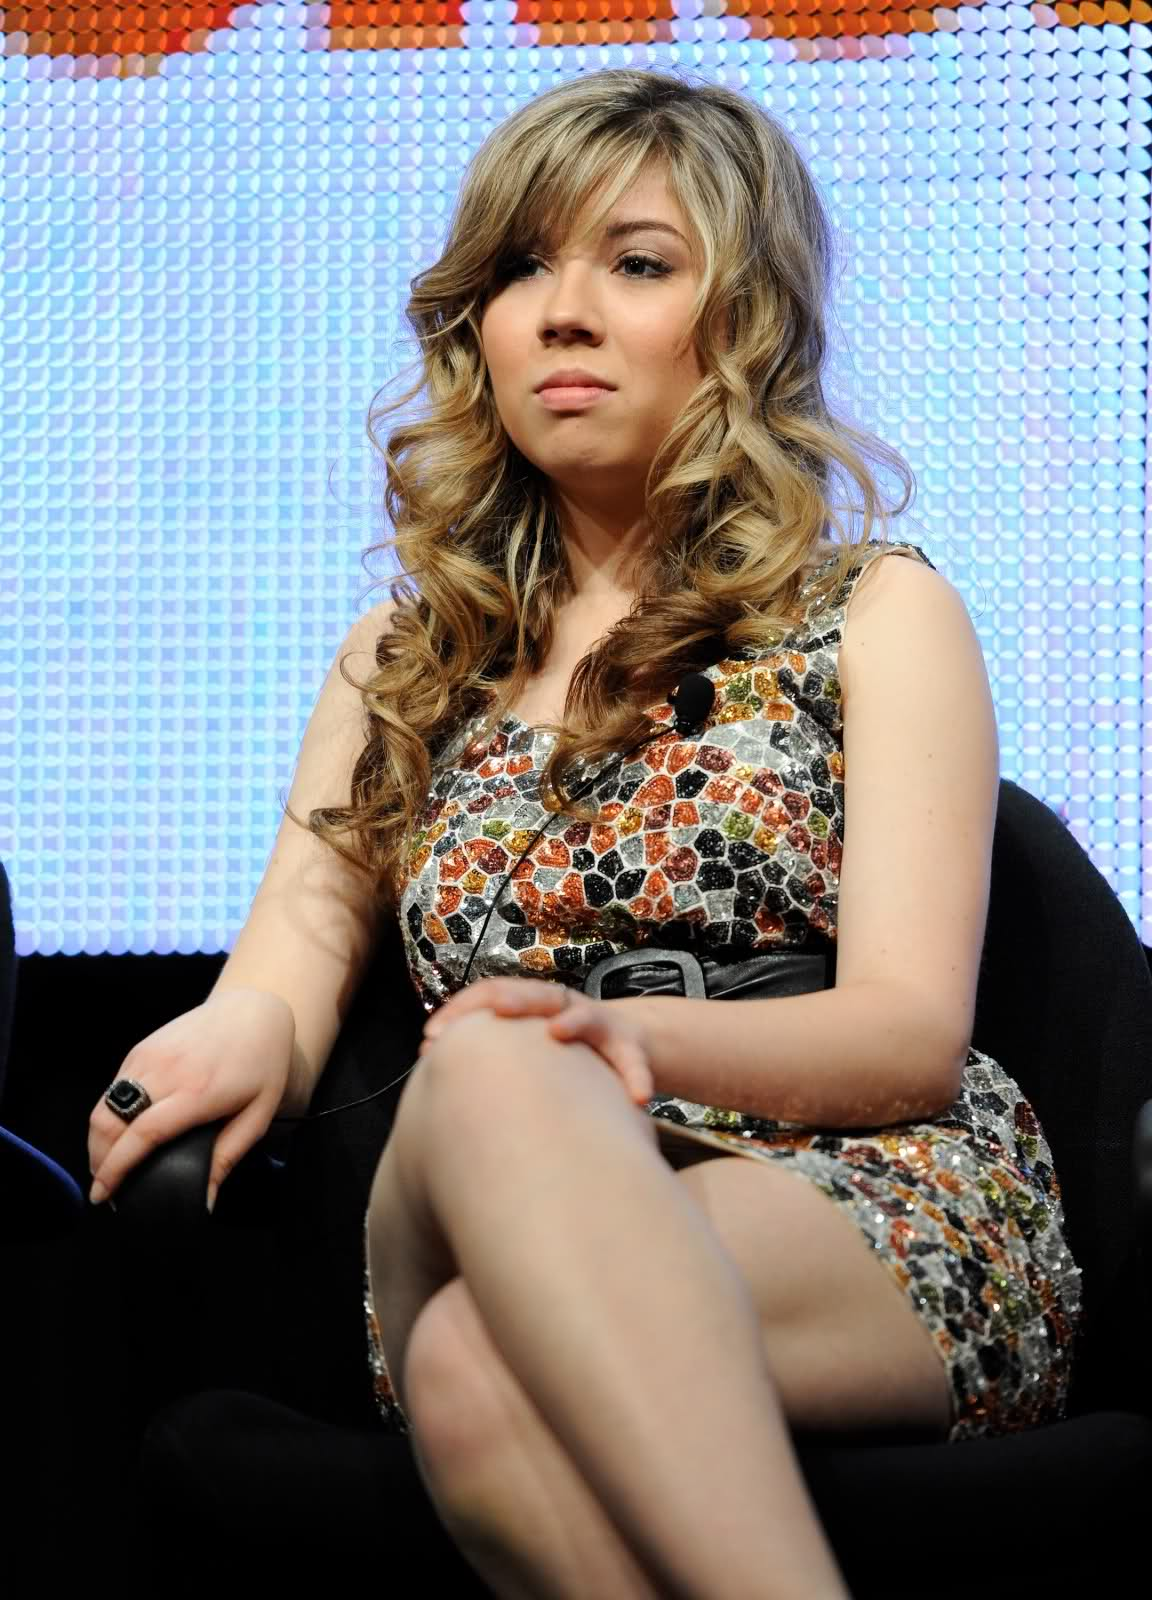 Jennette McCurdy, close-up, legs 2gy0sua.jpg